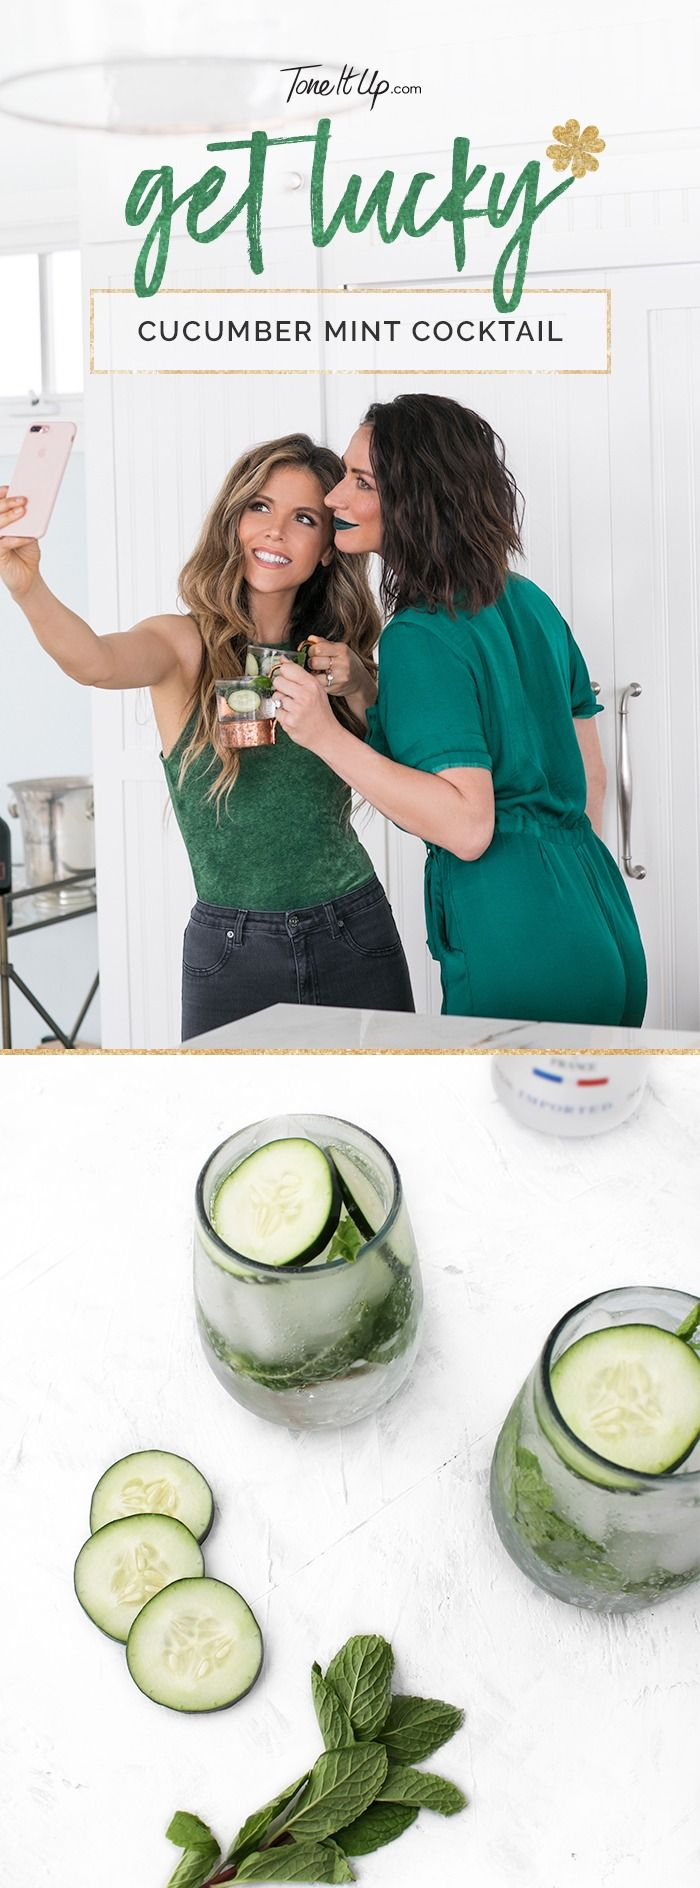 This healthy cucumber mint cocktail is the perfect way to celebrate St. Patrick's Day! Find the recipe on ToneItUp.com.